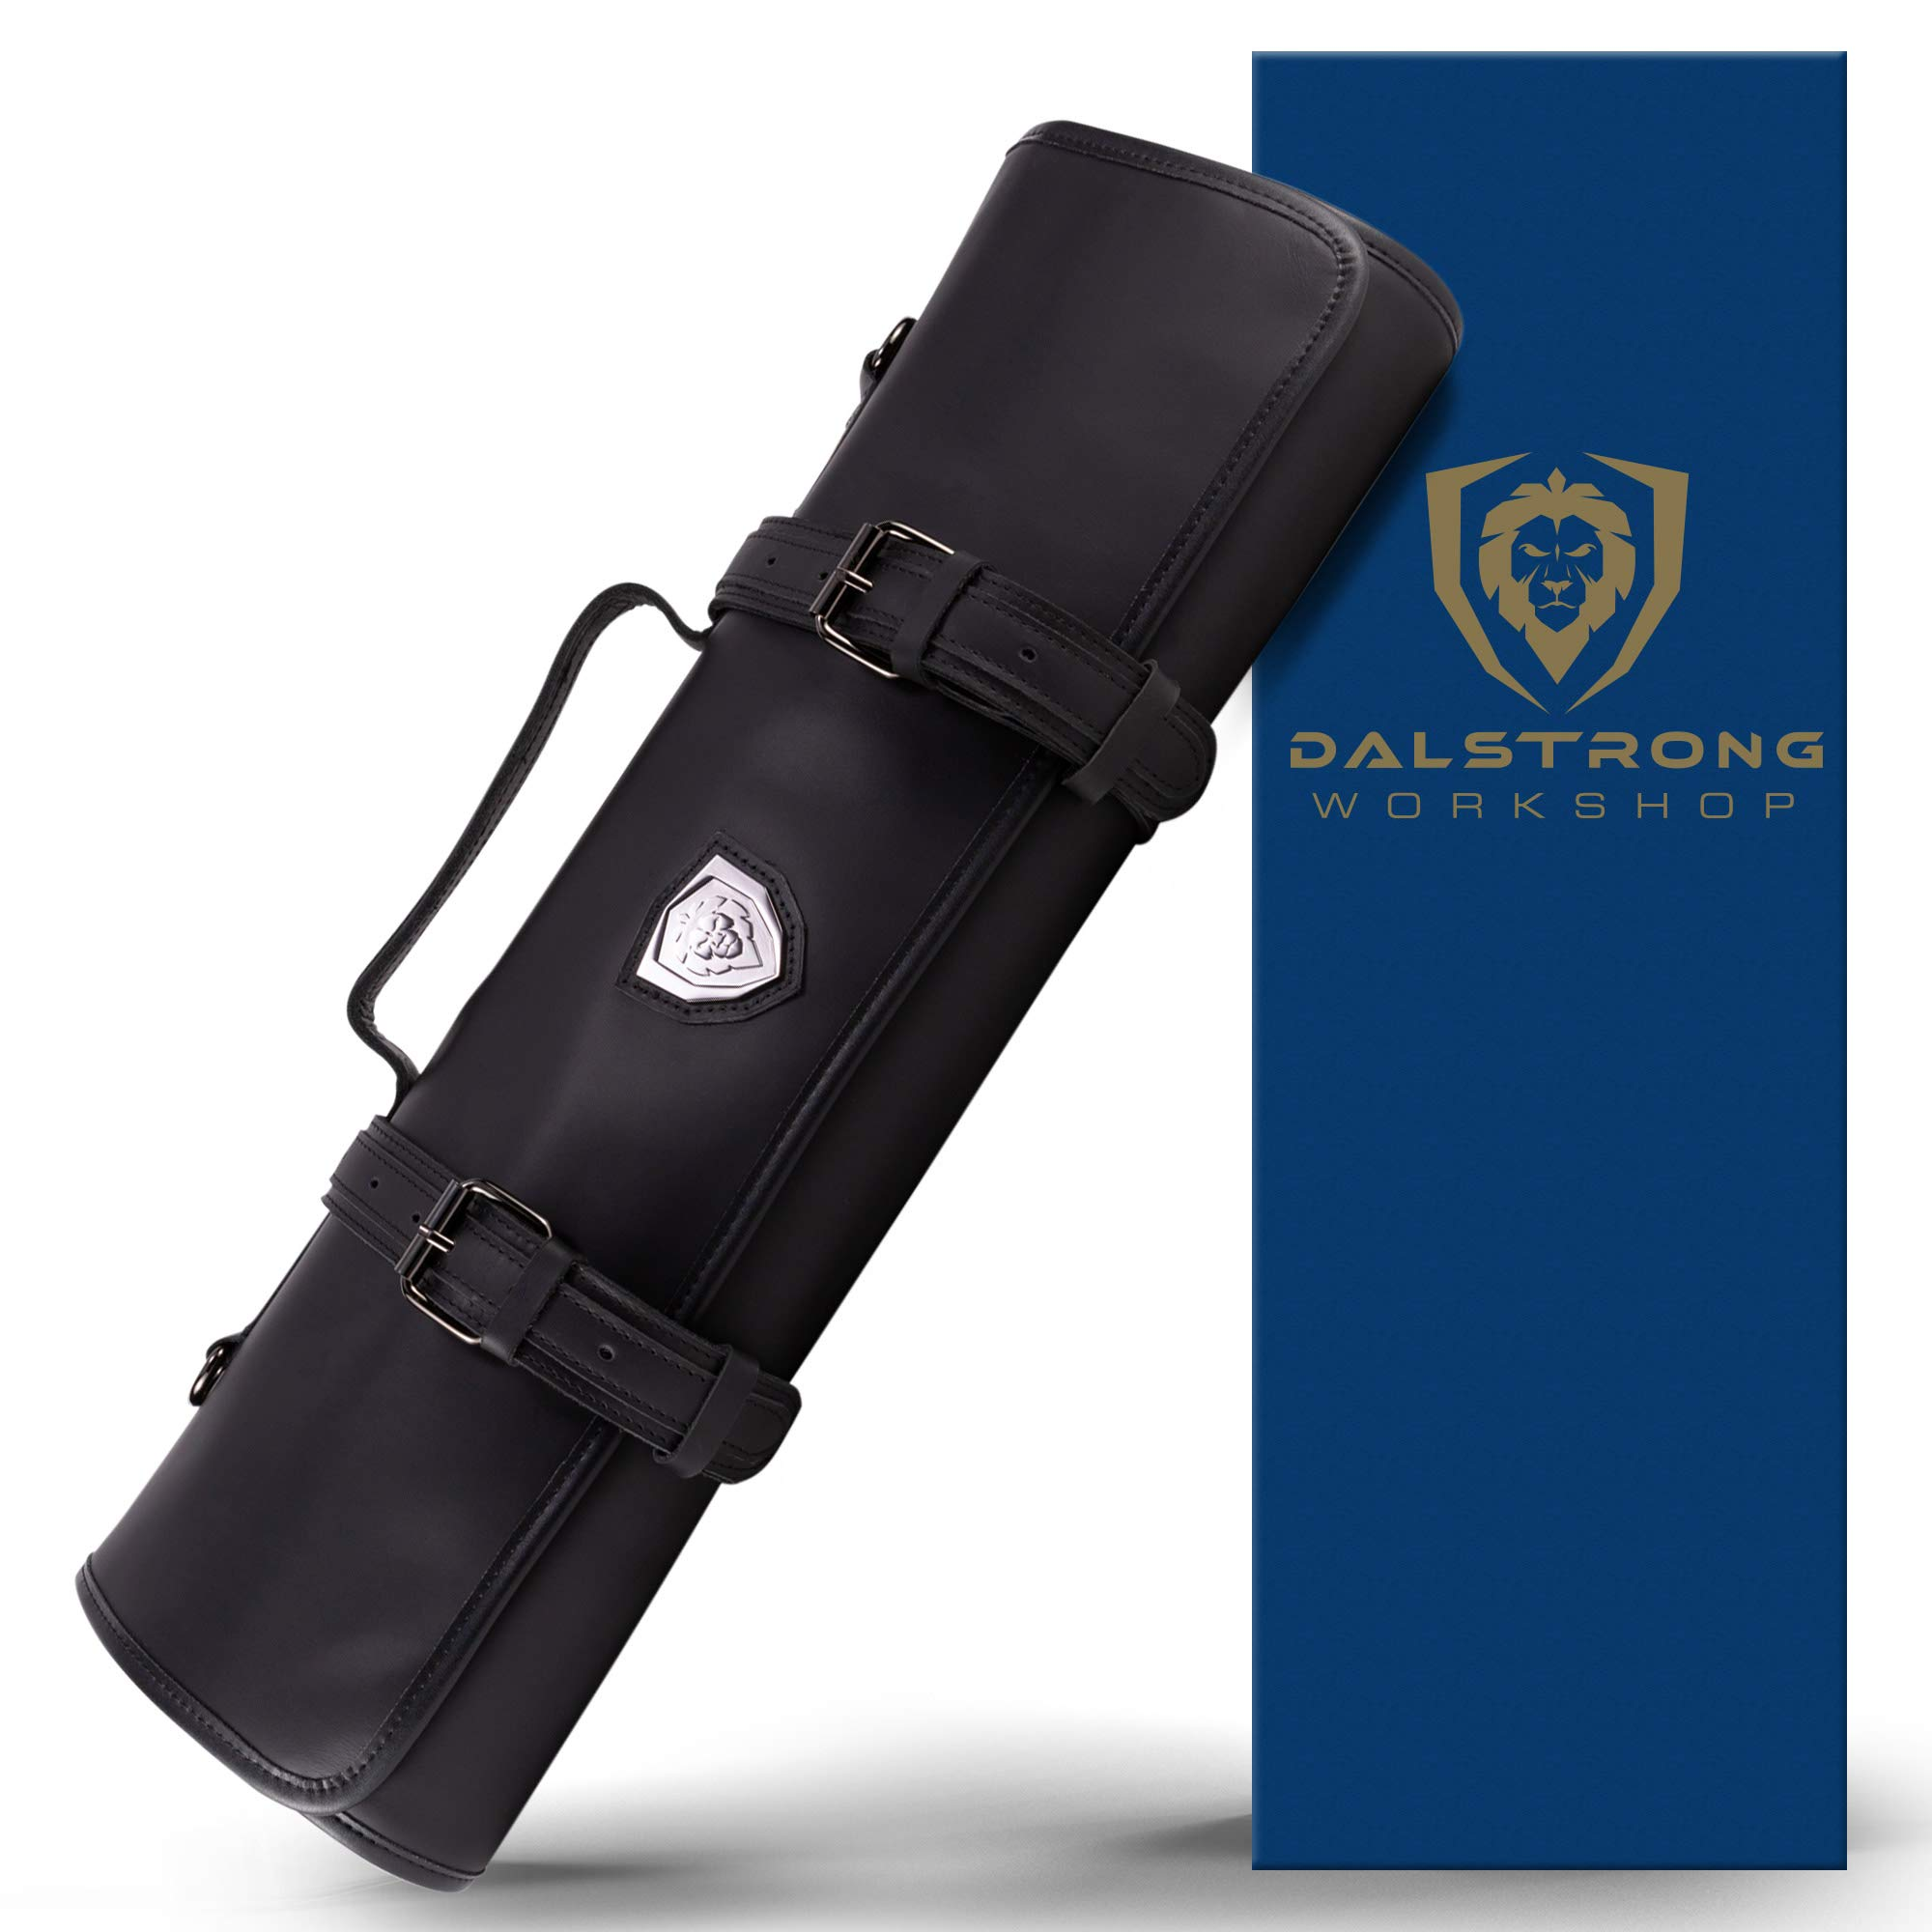 Dalstrong - Vagabond Knife Roll Full & Top Grain Brazilian Leather Roll Bag - 16 Slots - Interior and Rear Zippered Pockets - Blade Travel Storage/Case (Midnight Black) - Large - Up to 20'' Knives by Dalstrong